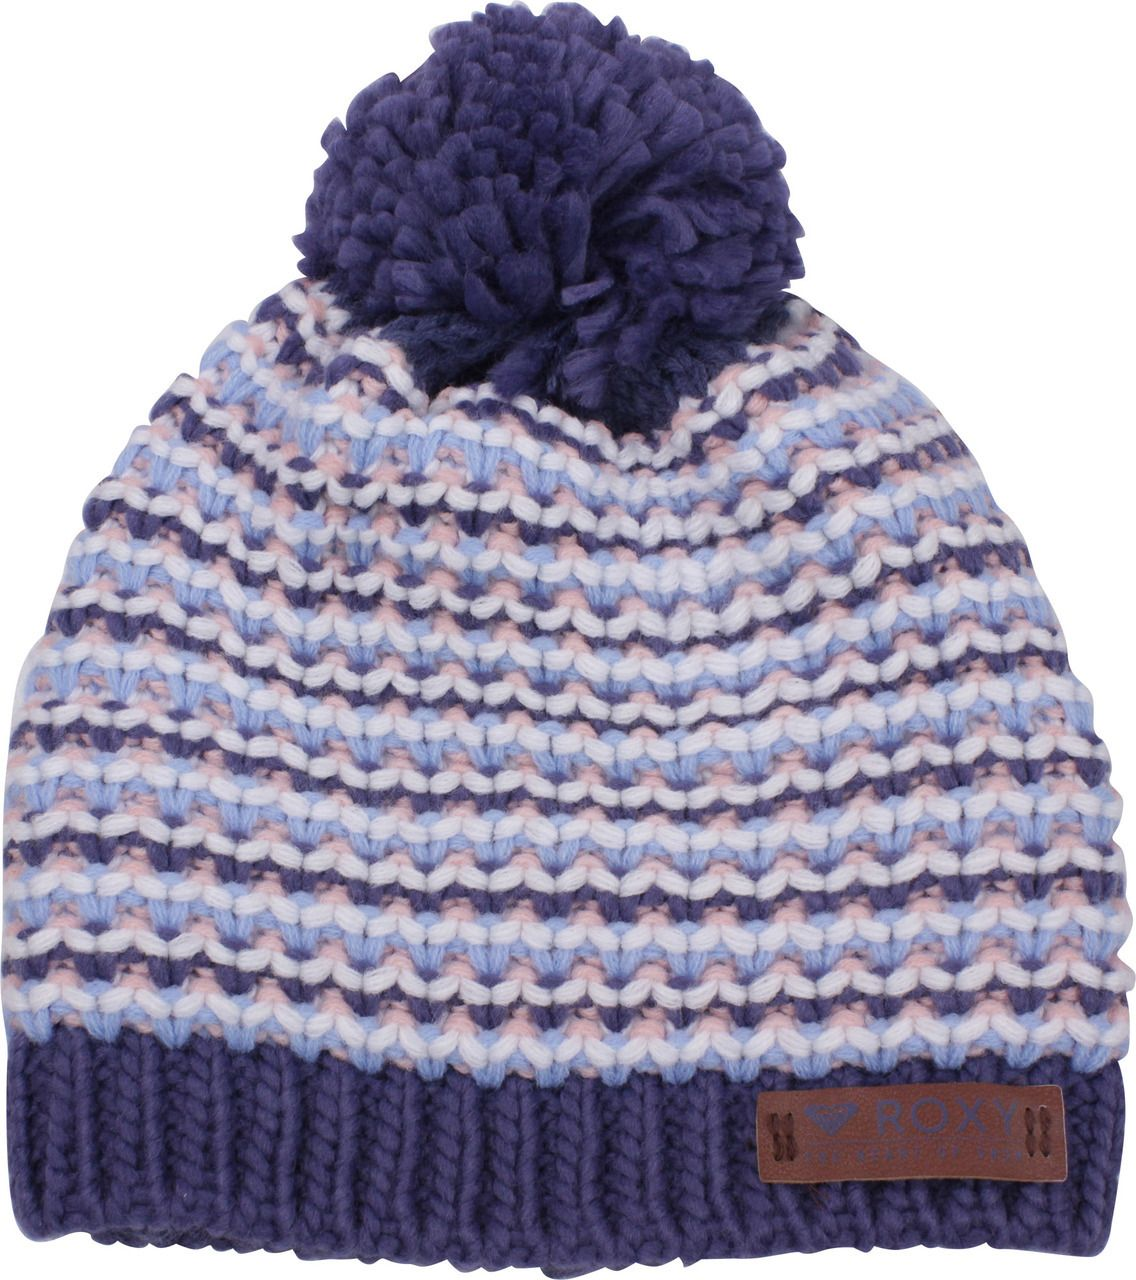 ca0b2701a Roxy Women's Anamudi Beanie (Crown Blue) | Roxy | Roxy, Beanie, Blue